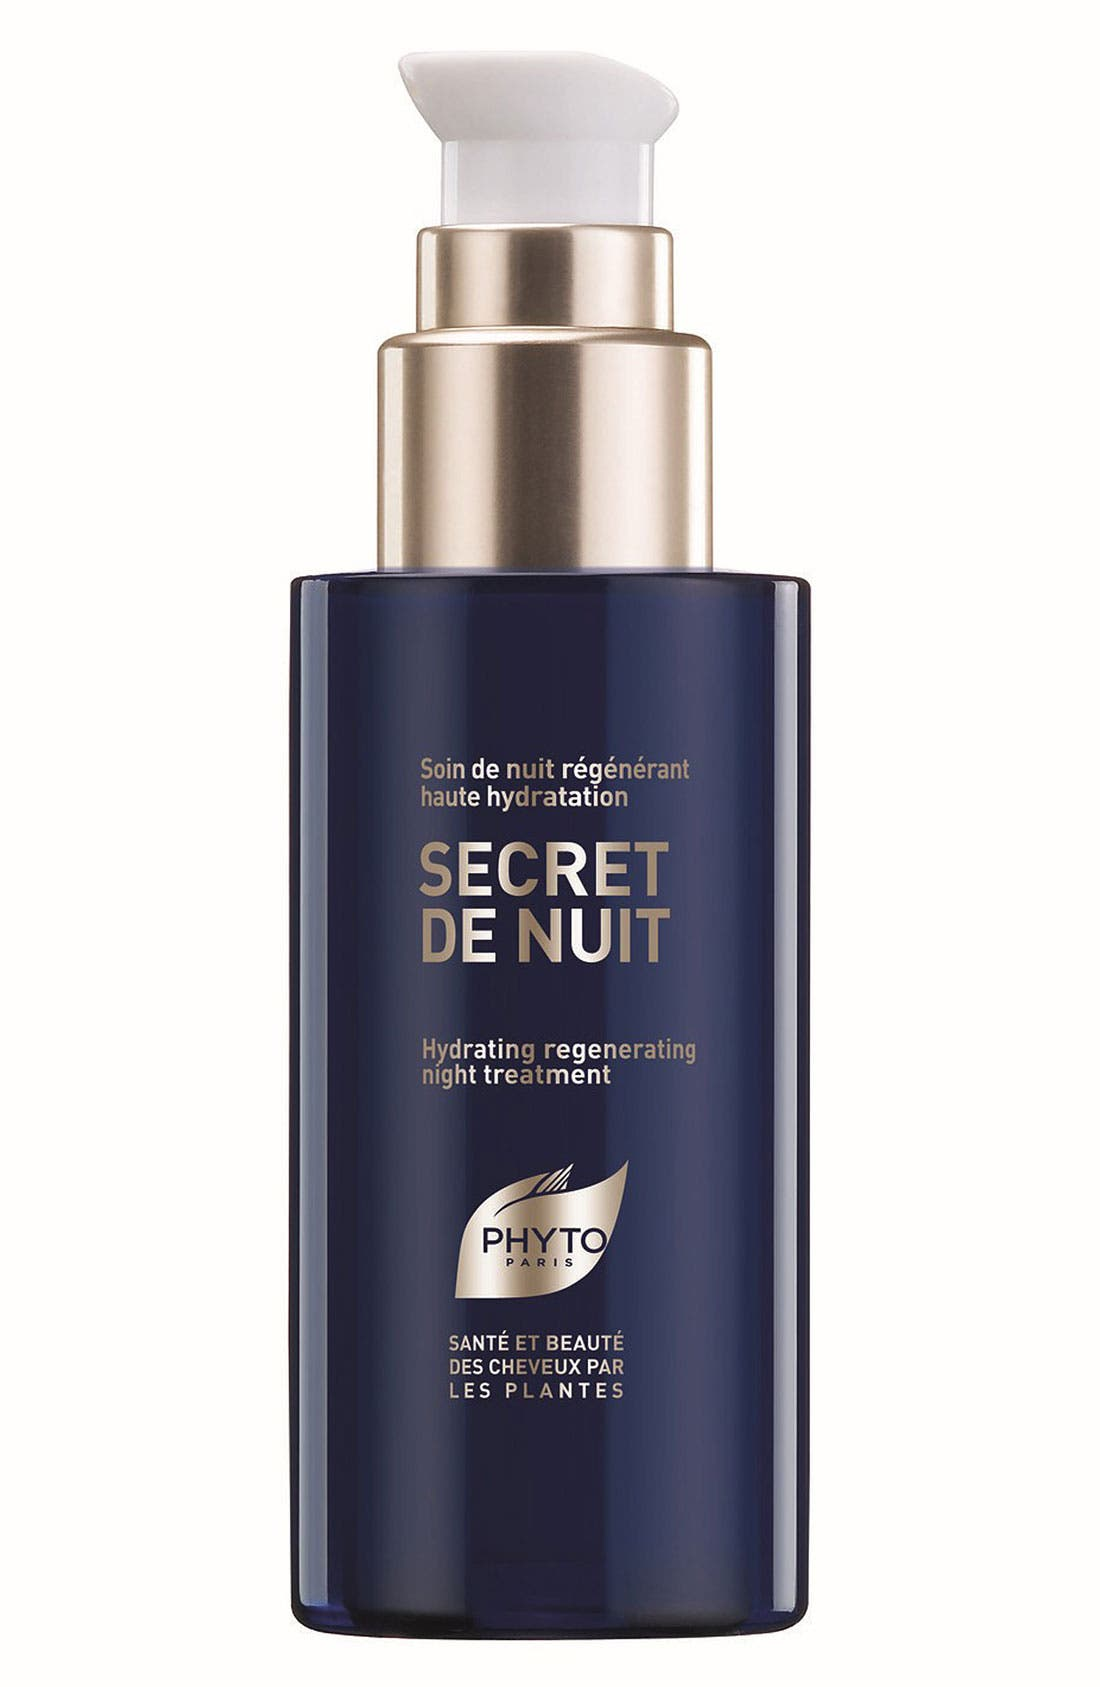 PHYTO Secret de Nuit Hydrating Regenerating Night Treatment